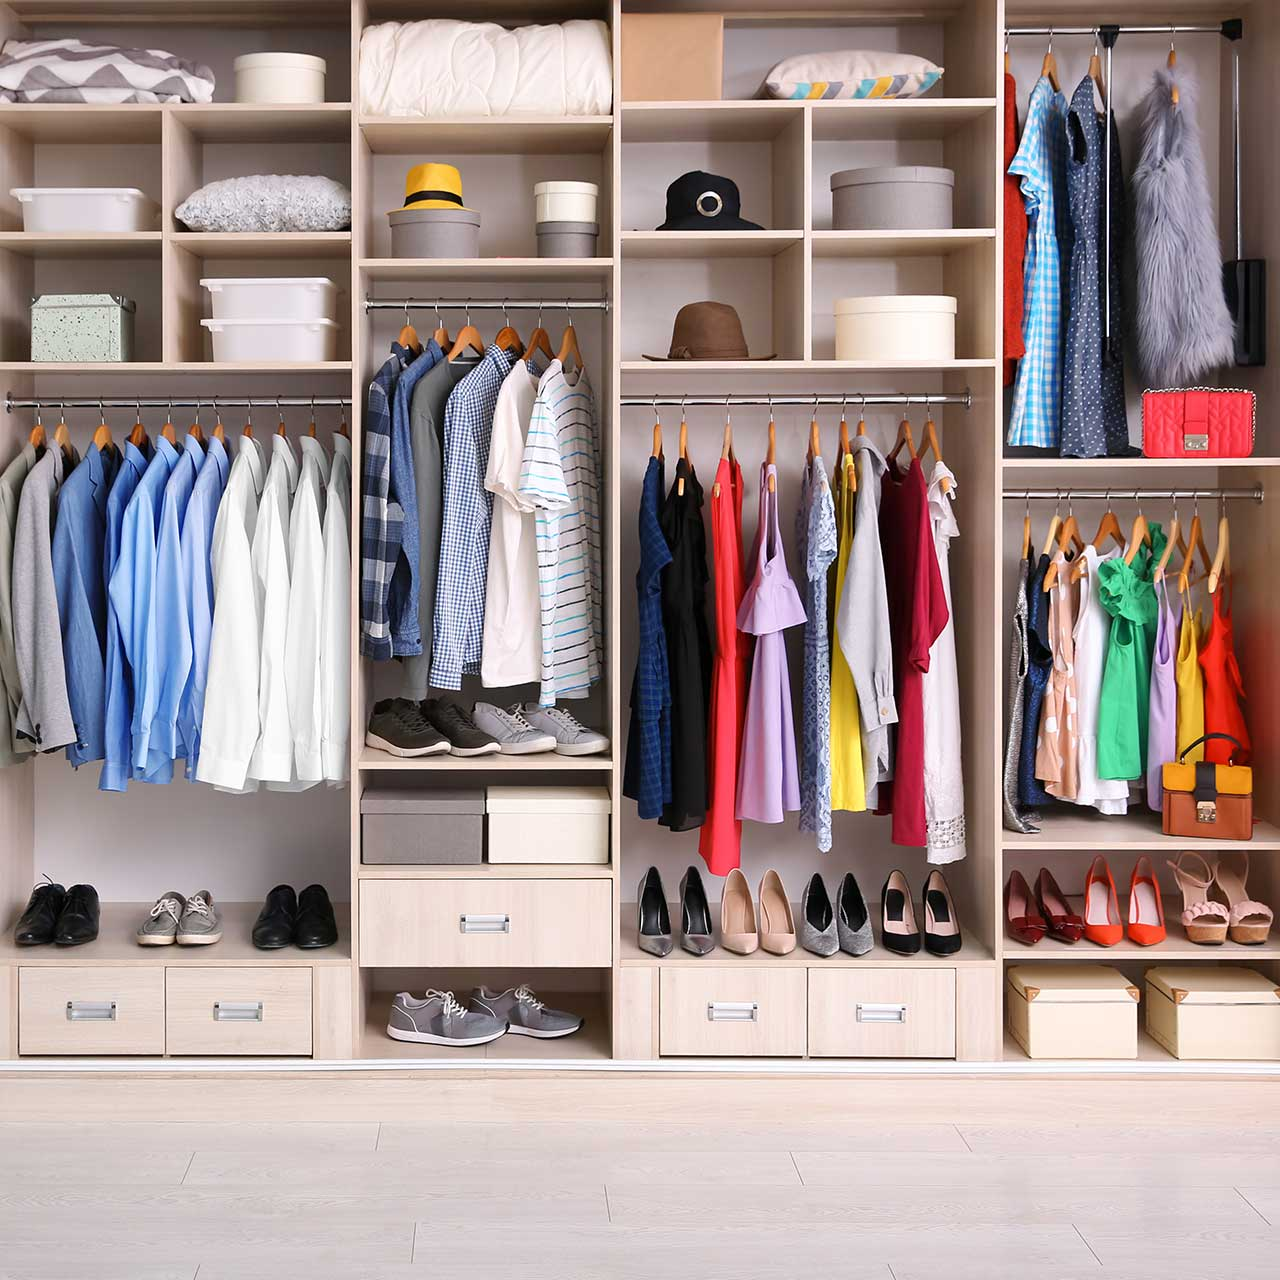 Max Out your Closet Space